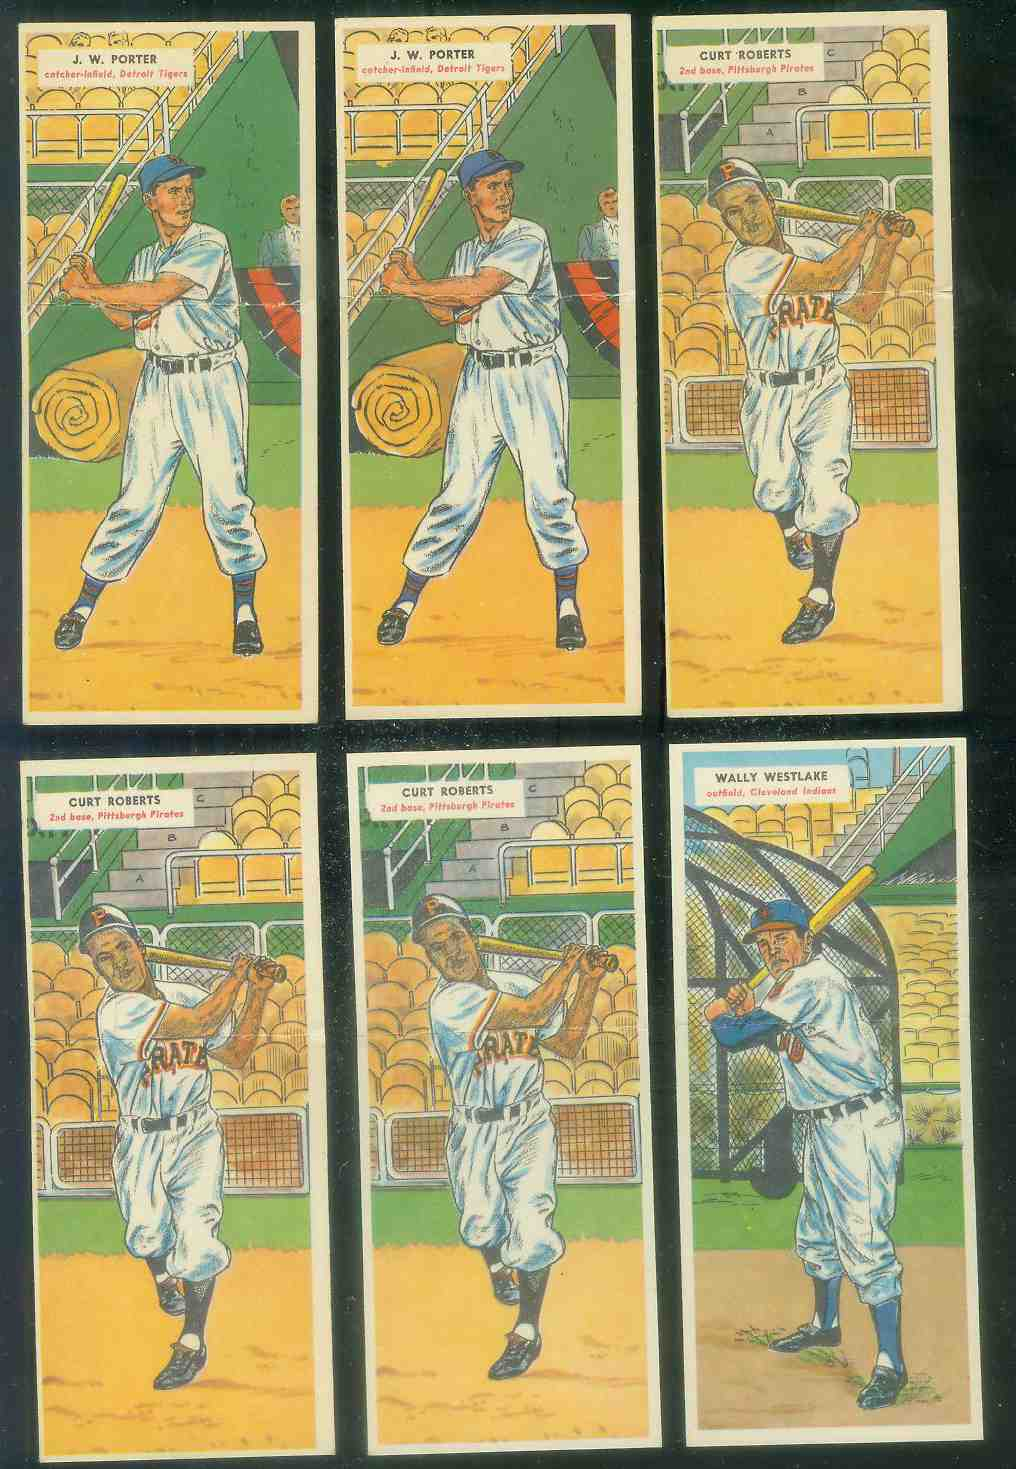 1955 Topps Double Header #.11 Curt Roberts / #12 Arnie Portocarrero [#x] Baseball cards value